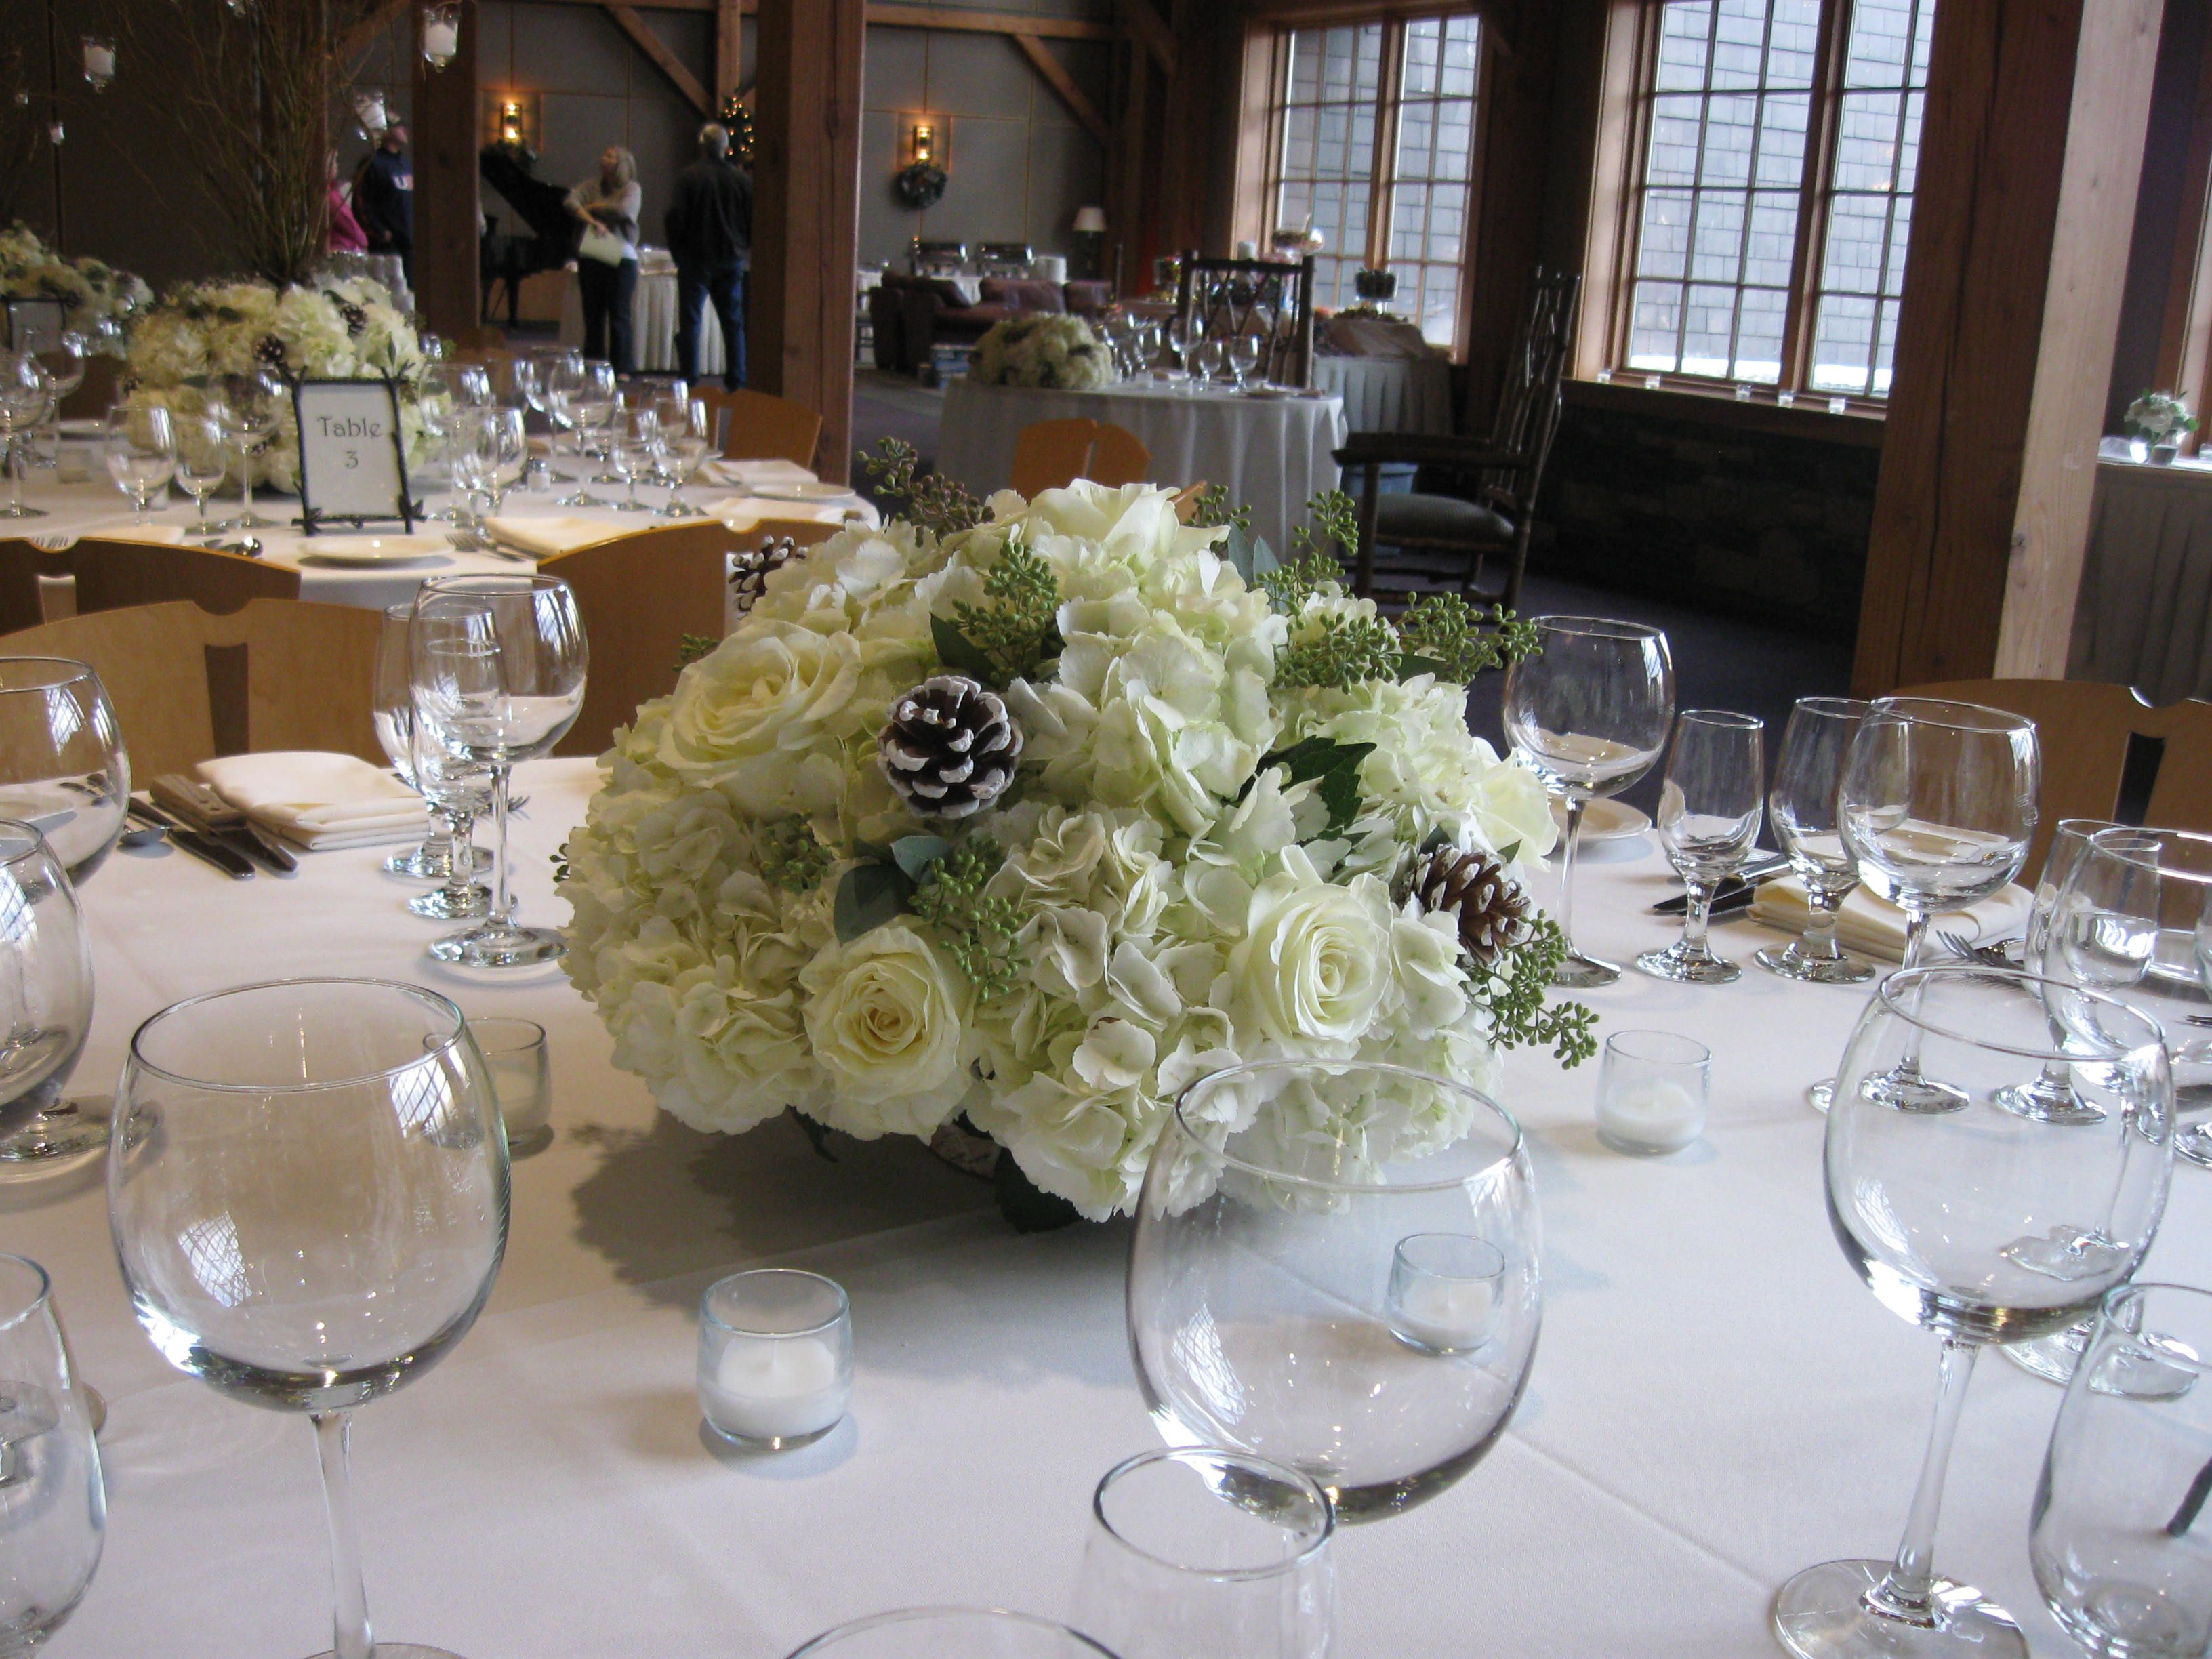 Beautiful winter wedding centerpieces of white roses